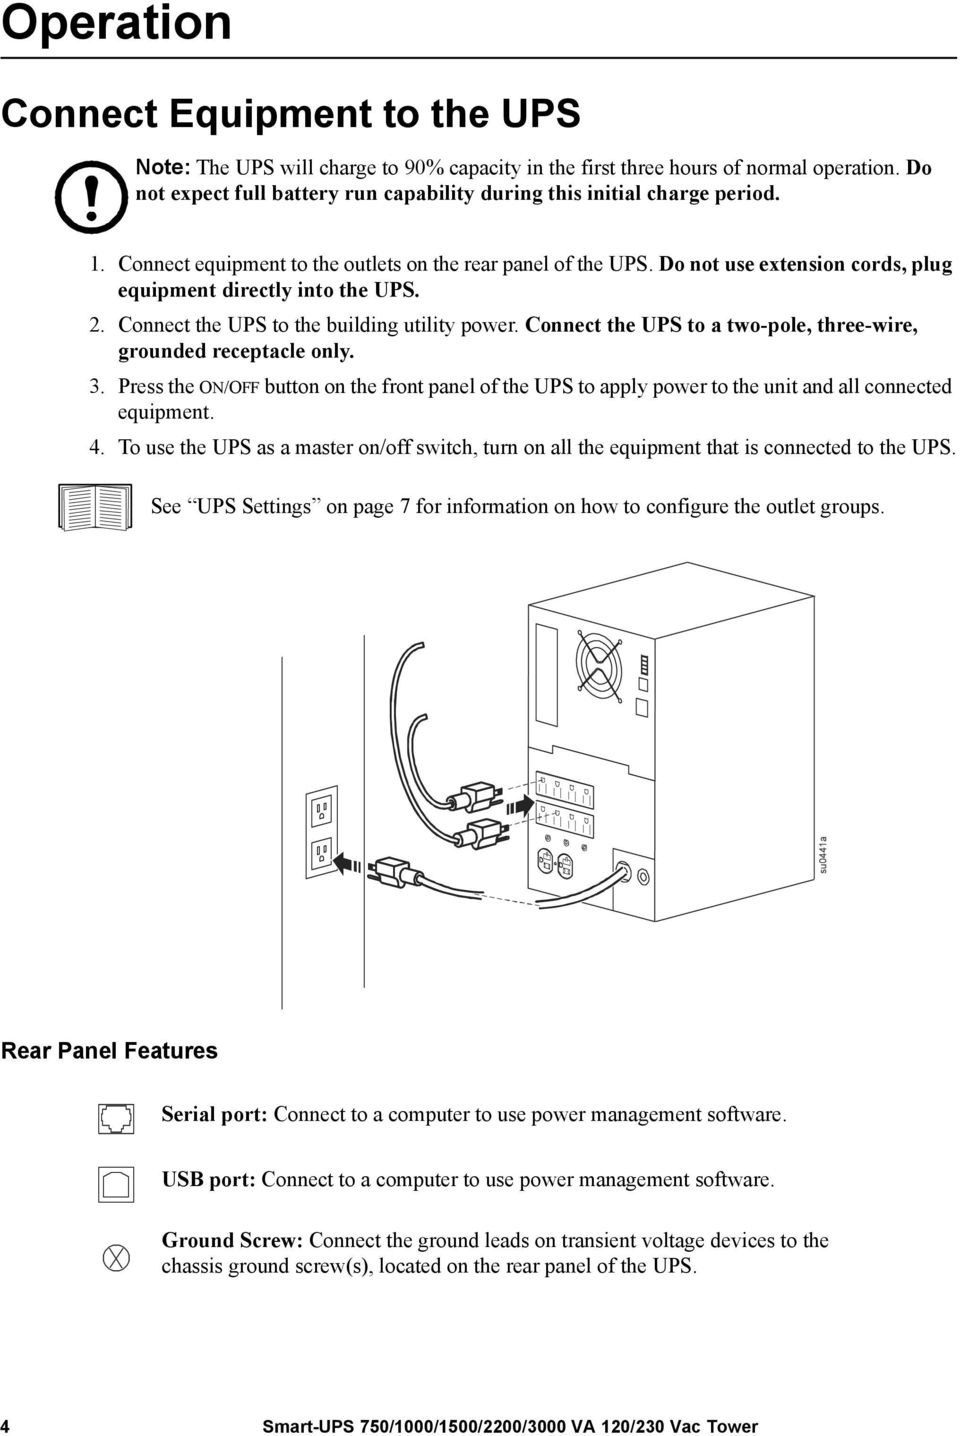 apc battery backup building wiring fault wiring diagram building wiring fault ups diagram